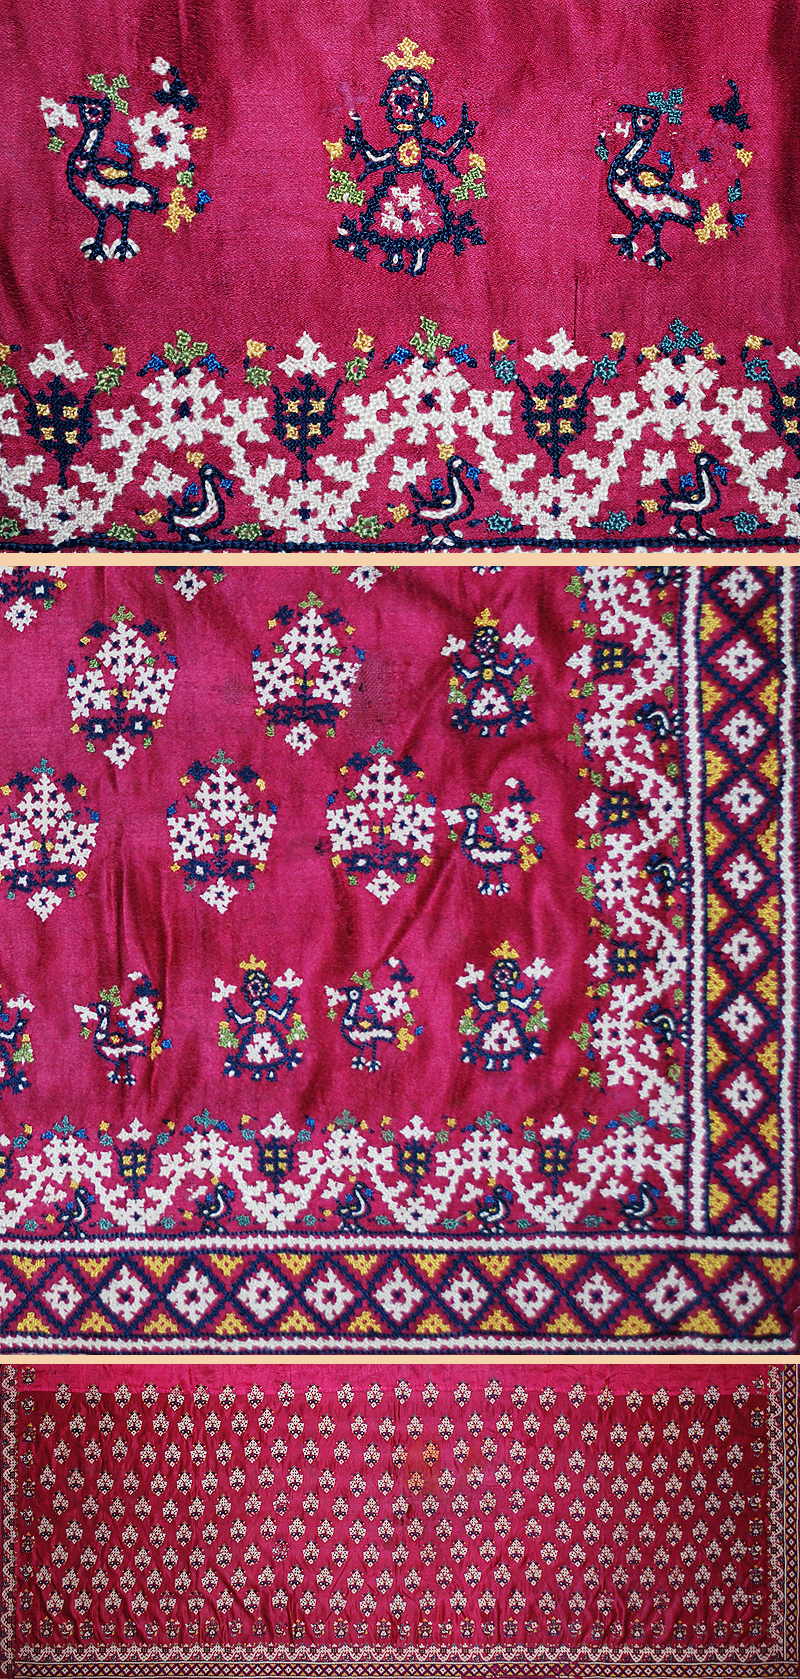 history of indian textiles Journal of indian textile history no vii 1967 by irwin, john [ed] and others and a great selection of similar used, new and collectible books available now at abebookscom.